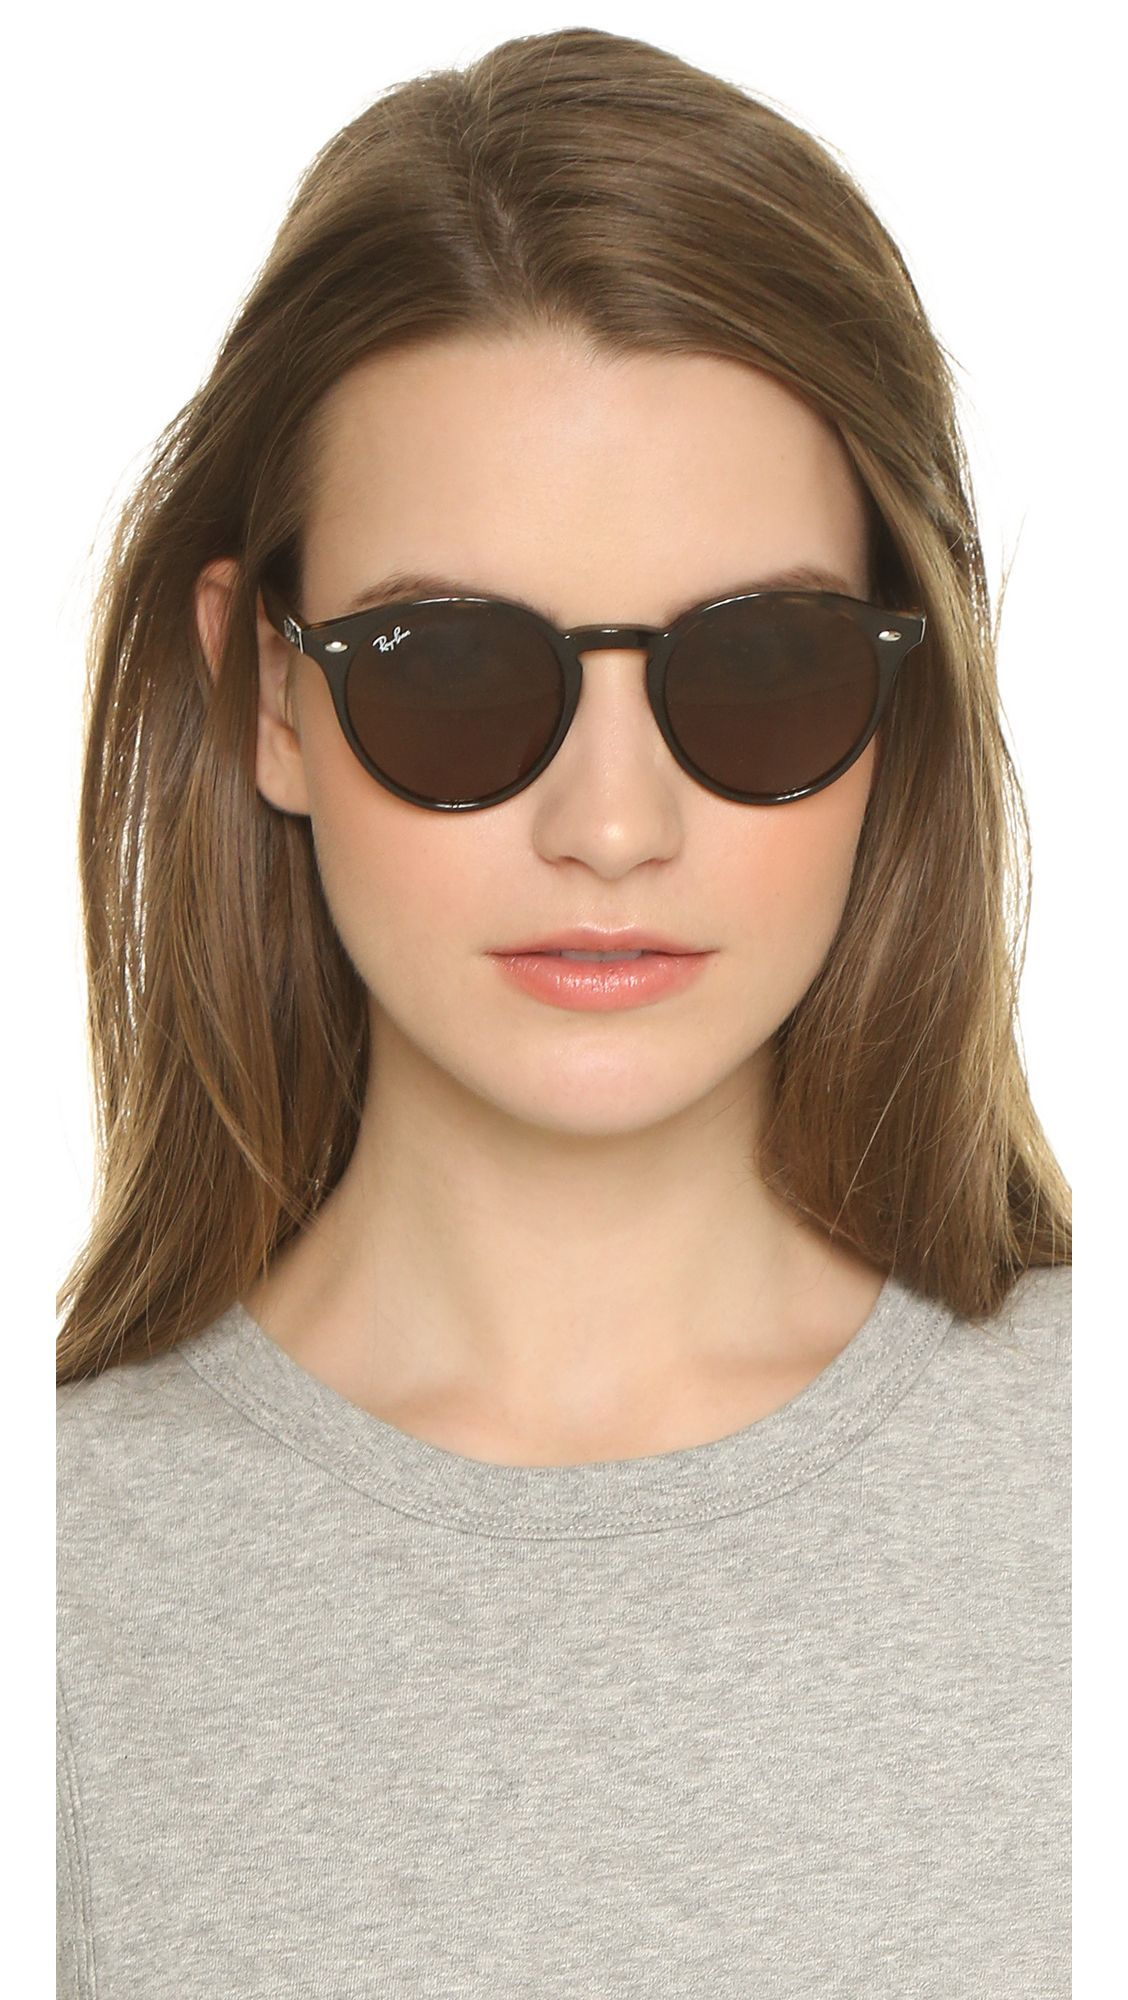 Pin by Ashley Rininger on Ray Ban Outlet   Michael kors